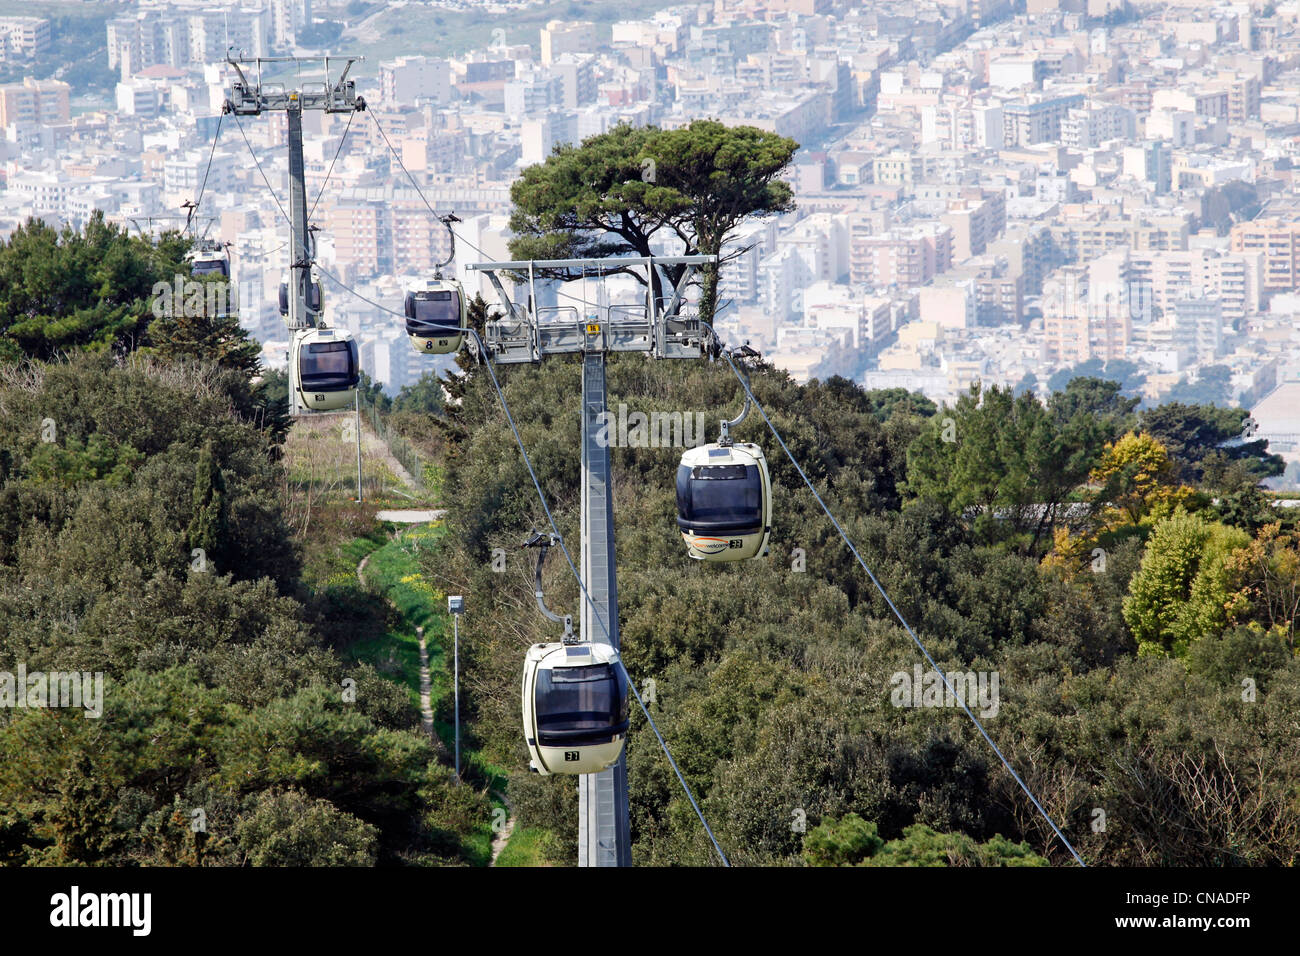 Erice to Trapani cable car, Sicily, Italy - Stock Image